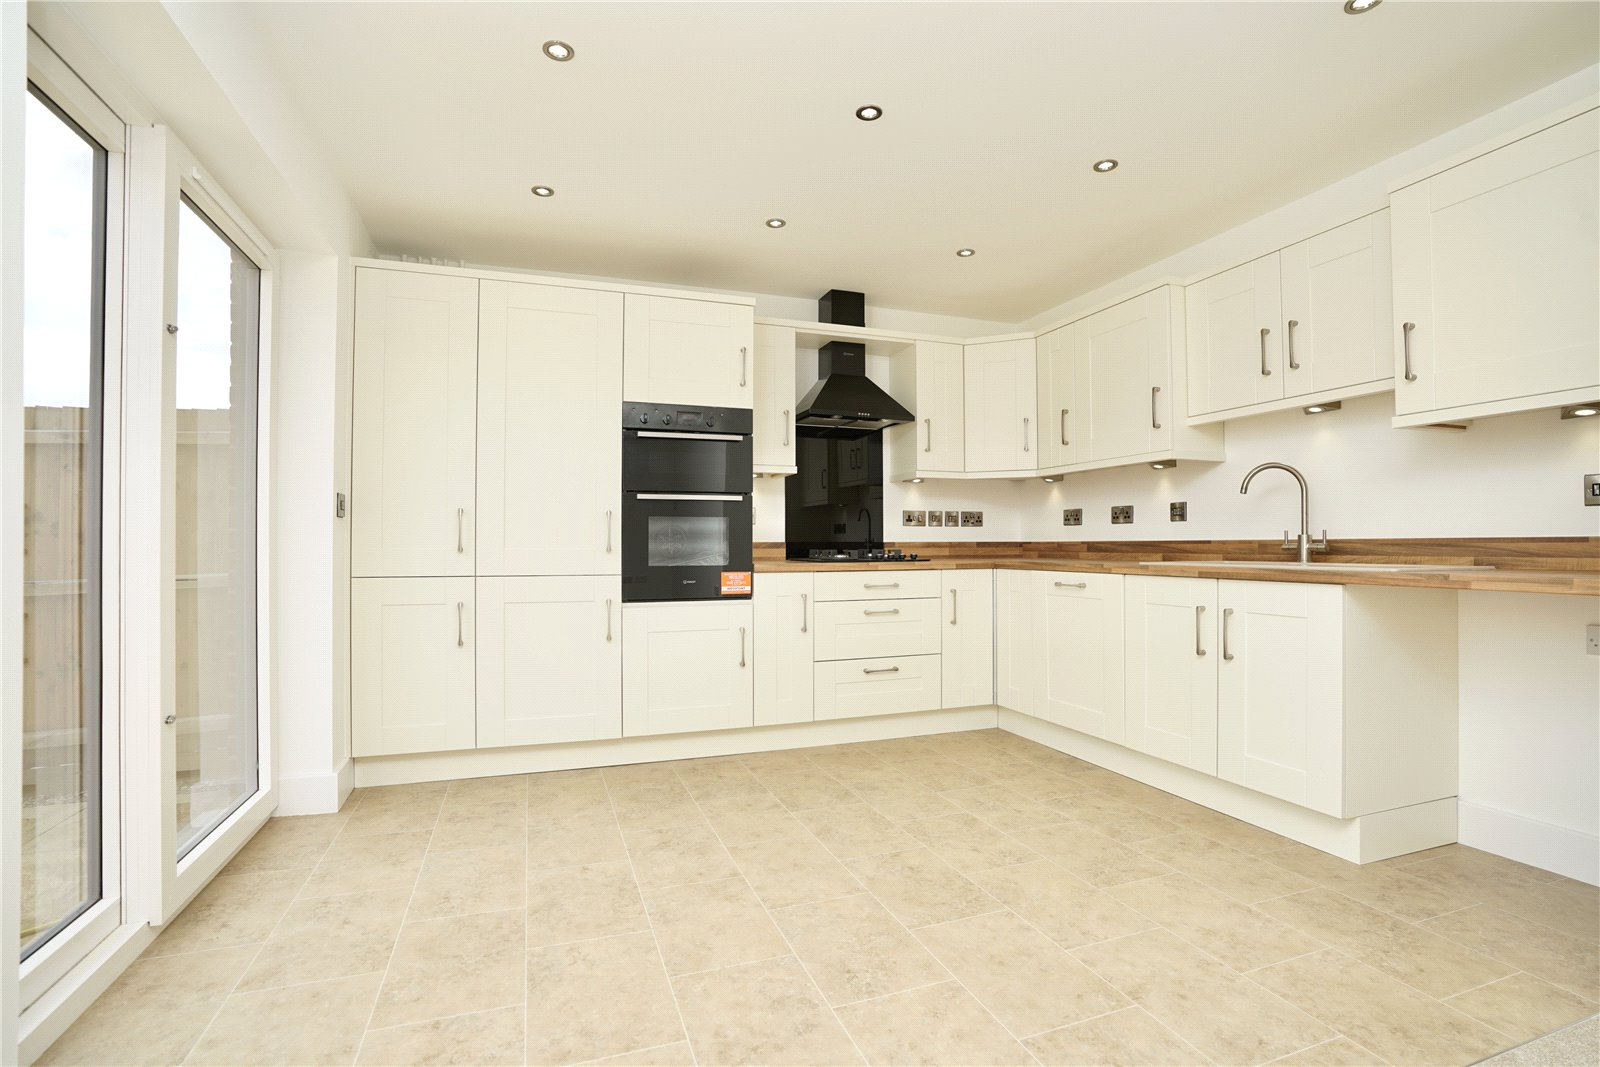 3 bed bungalow for sale in Whittlesey, PE7 1RU  - Property Image 2